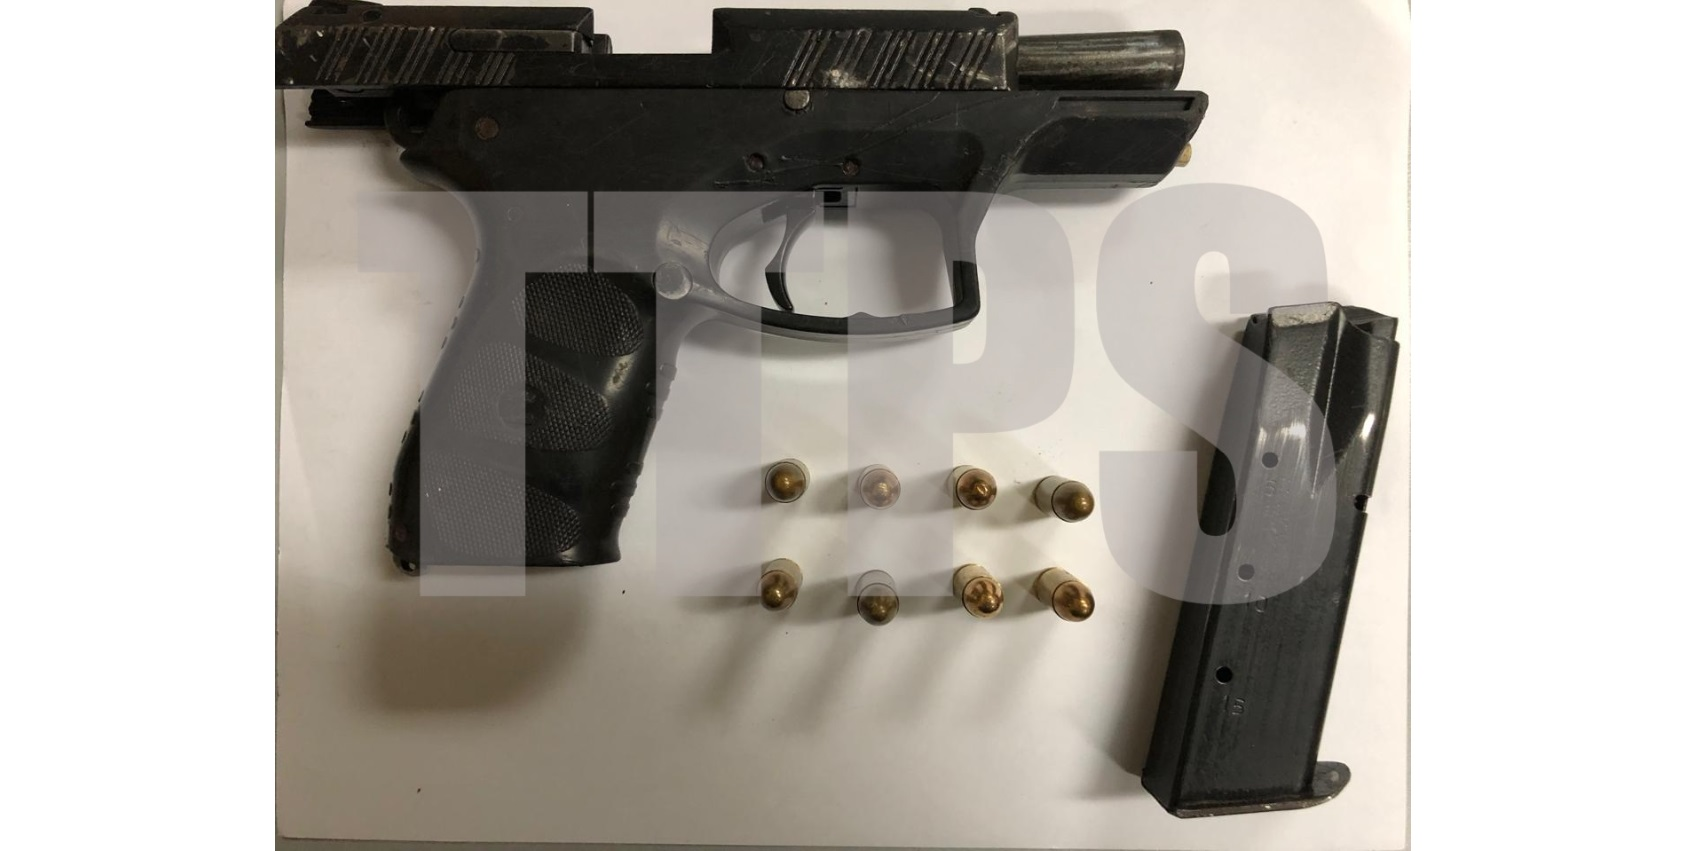 Seized: A pistol an ammunition which were found in a plastic bag in Cocorite.